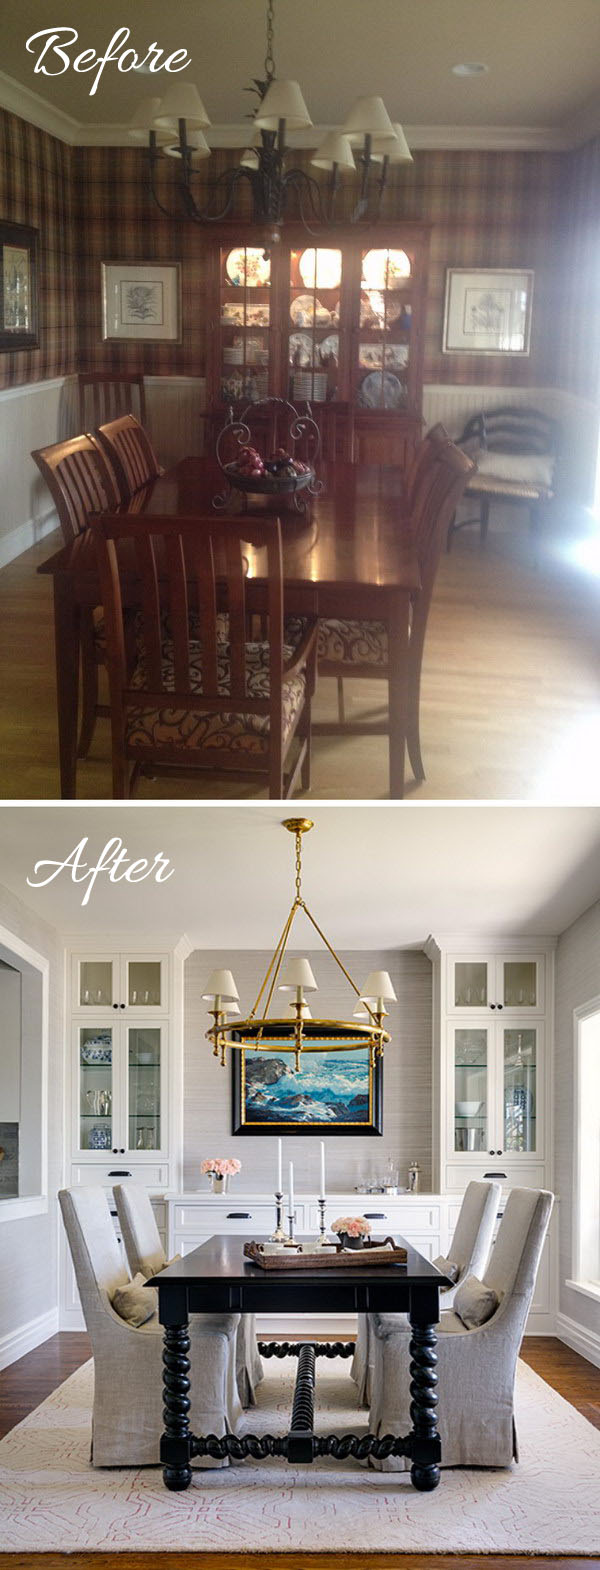 39-40-dining-room-makeover-ideas-tutorials